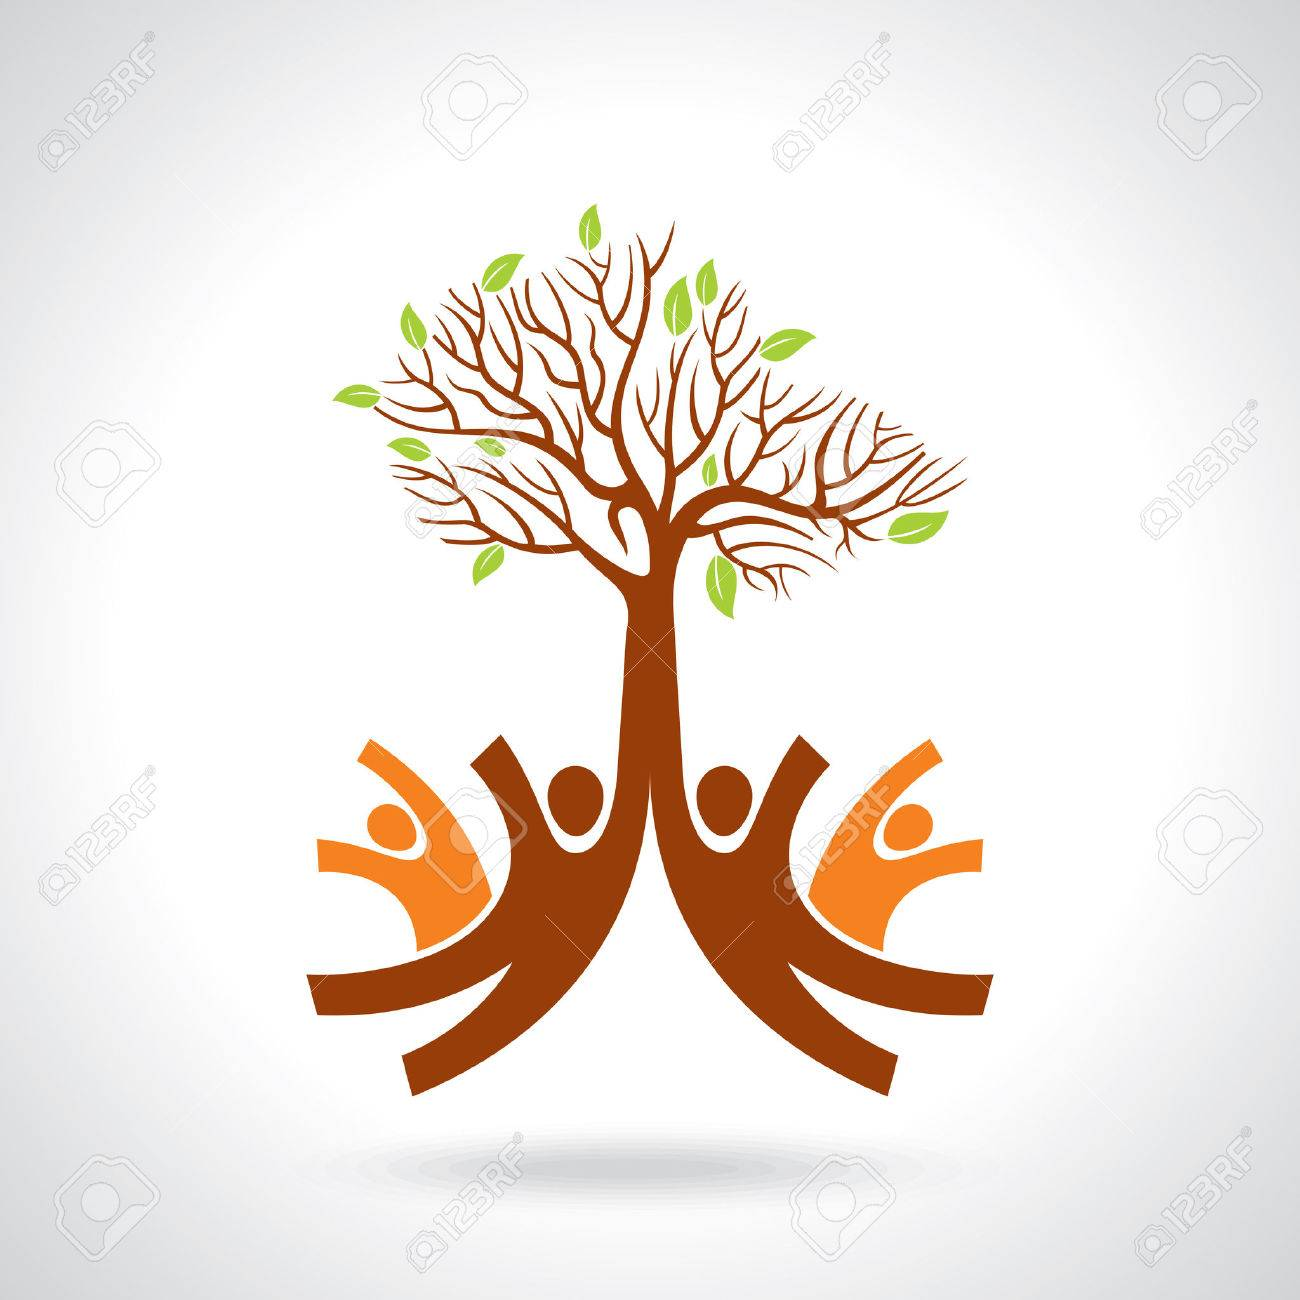 creative group of hands with save tree Standard-Bild - 41621907